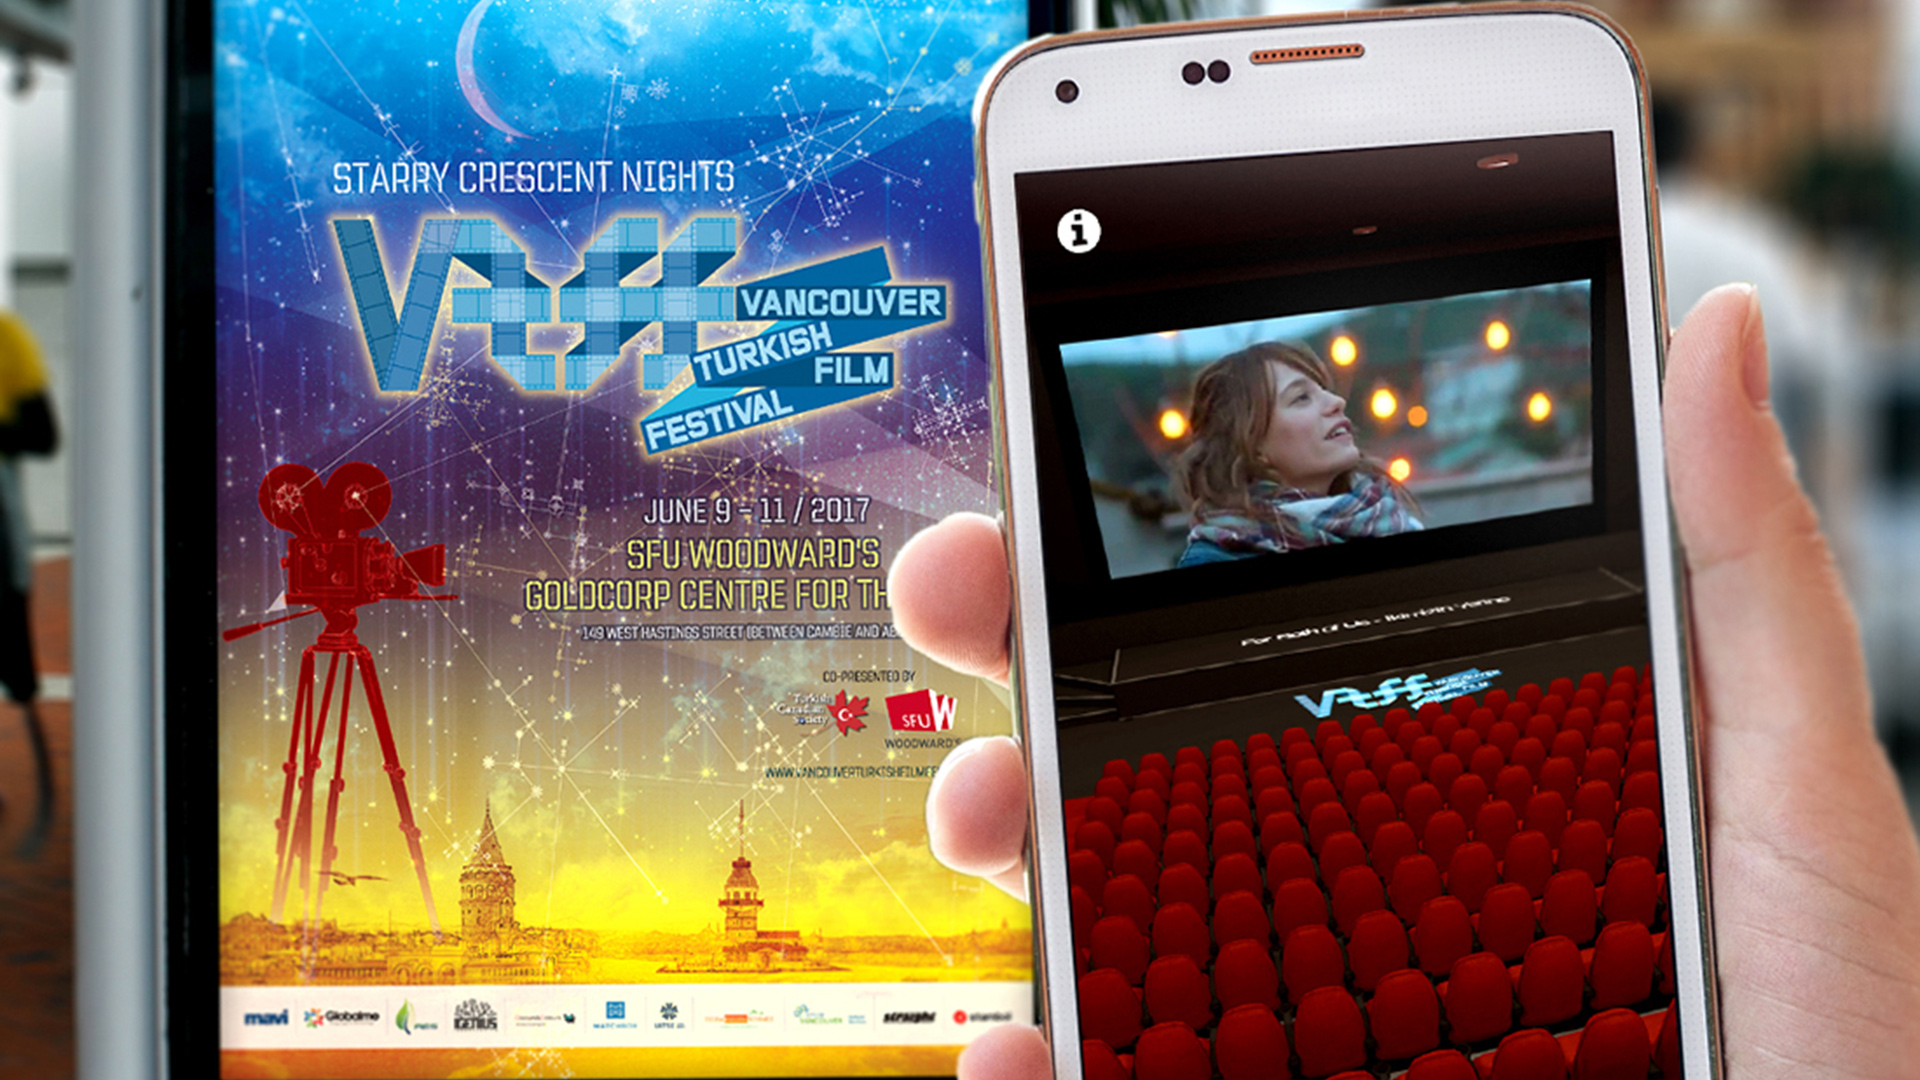 Vancouver Turkish Film Festival Augmented Reality App